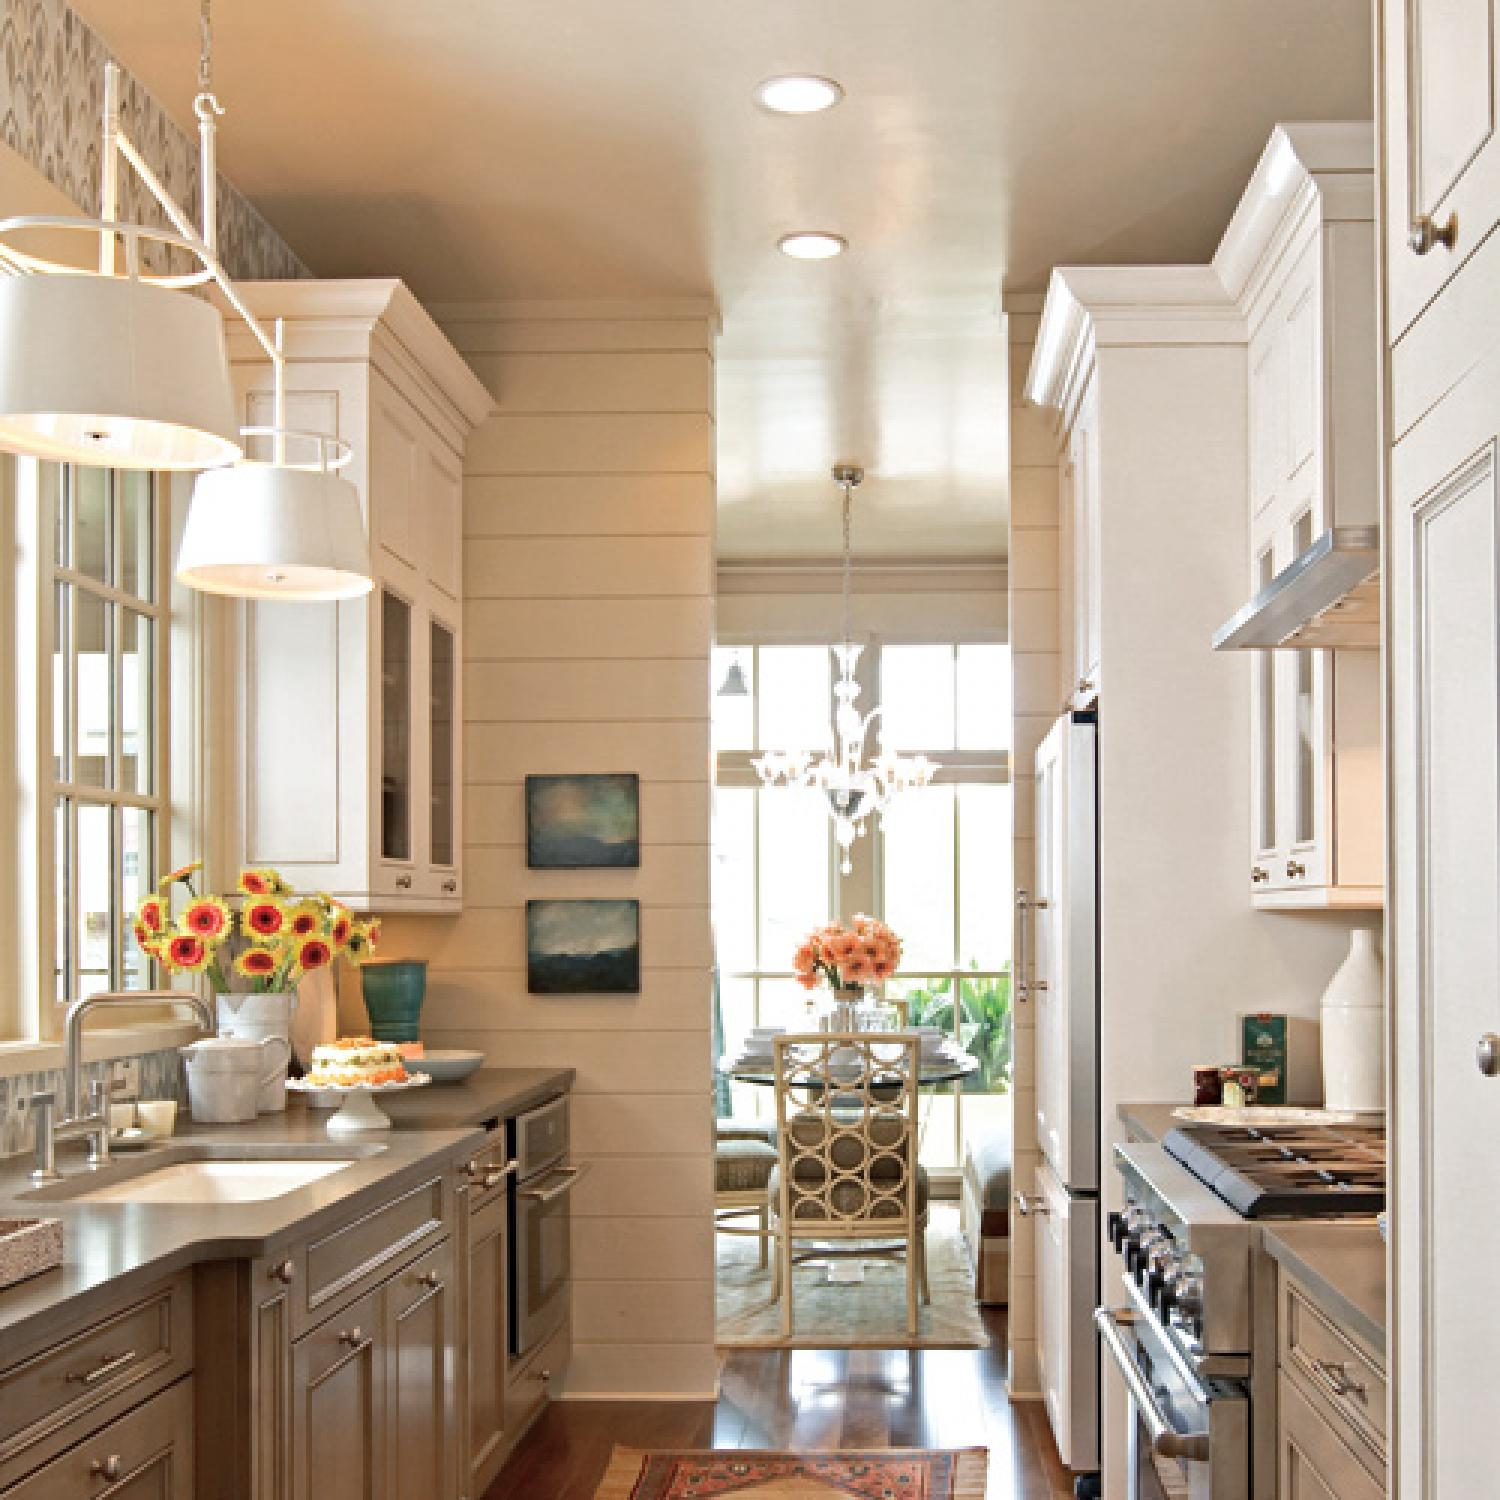 Beautiful, Efficient Small Kitchens | Traditional Home on kitchen pantry ideas, small kitchen ideas, attic renovation ideas, landscaping ideas, kitchen islands, kitchen cabinets, bedroom renovation ideas, desk renovation ideas, kitchen tile ideas, kitchen countertops, country kitchen ideas, kitchen color ideas, fire place renovation ideas, kitchen wood ideas, victorian renovation ideas, galley kitchen ideas, kitchen design ideas, kitchen backsplash ideas, kitchen lighting ideas, kitchen remodel,